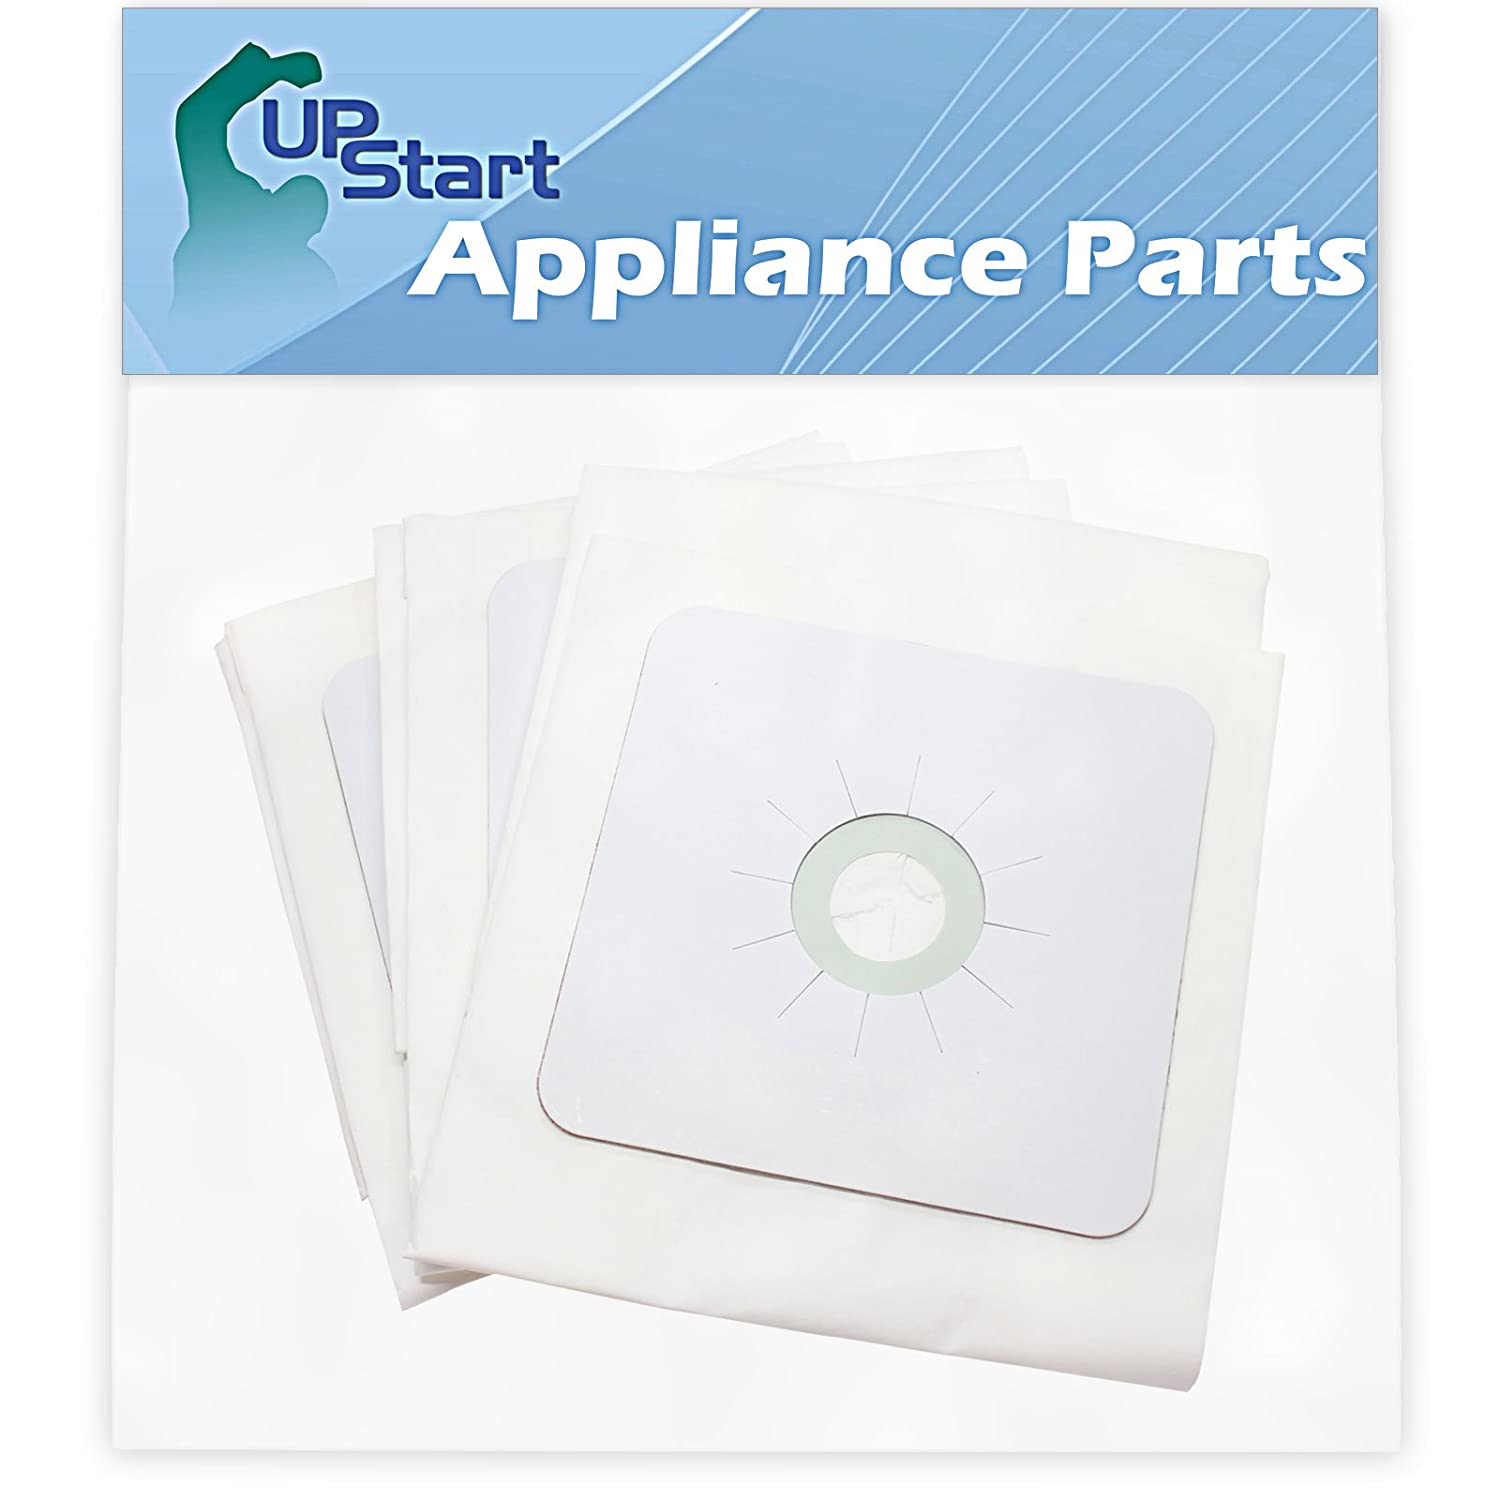 3 Replacement 391 Central Vacuum Bags for NuTone, Beam, Electrolux - Compatible with Nutone VX475, Nutone CV353, Nutone CV450, Nutone 391, Nutone CV400, Nutone CV350, Nutone 44186, Nutone CV352, Nutone CV750, Nutone CV-391, Nutone CF3918, Nutone Advantage, Beam 167, Nutone CV351, Nutone CV653